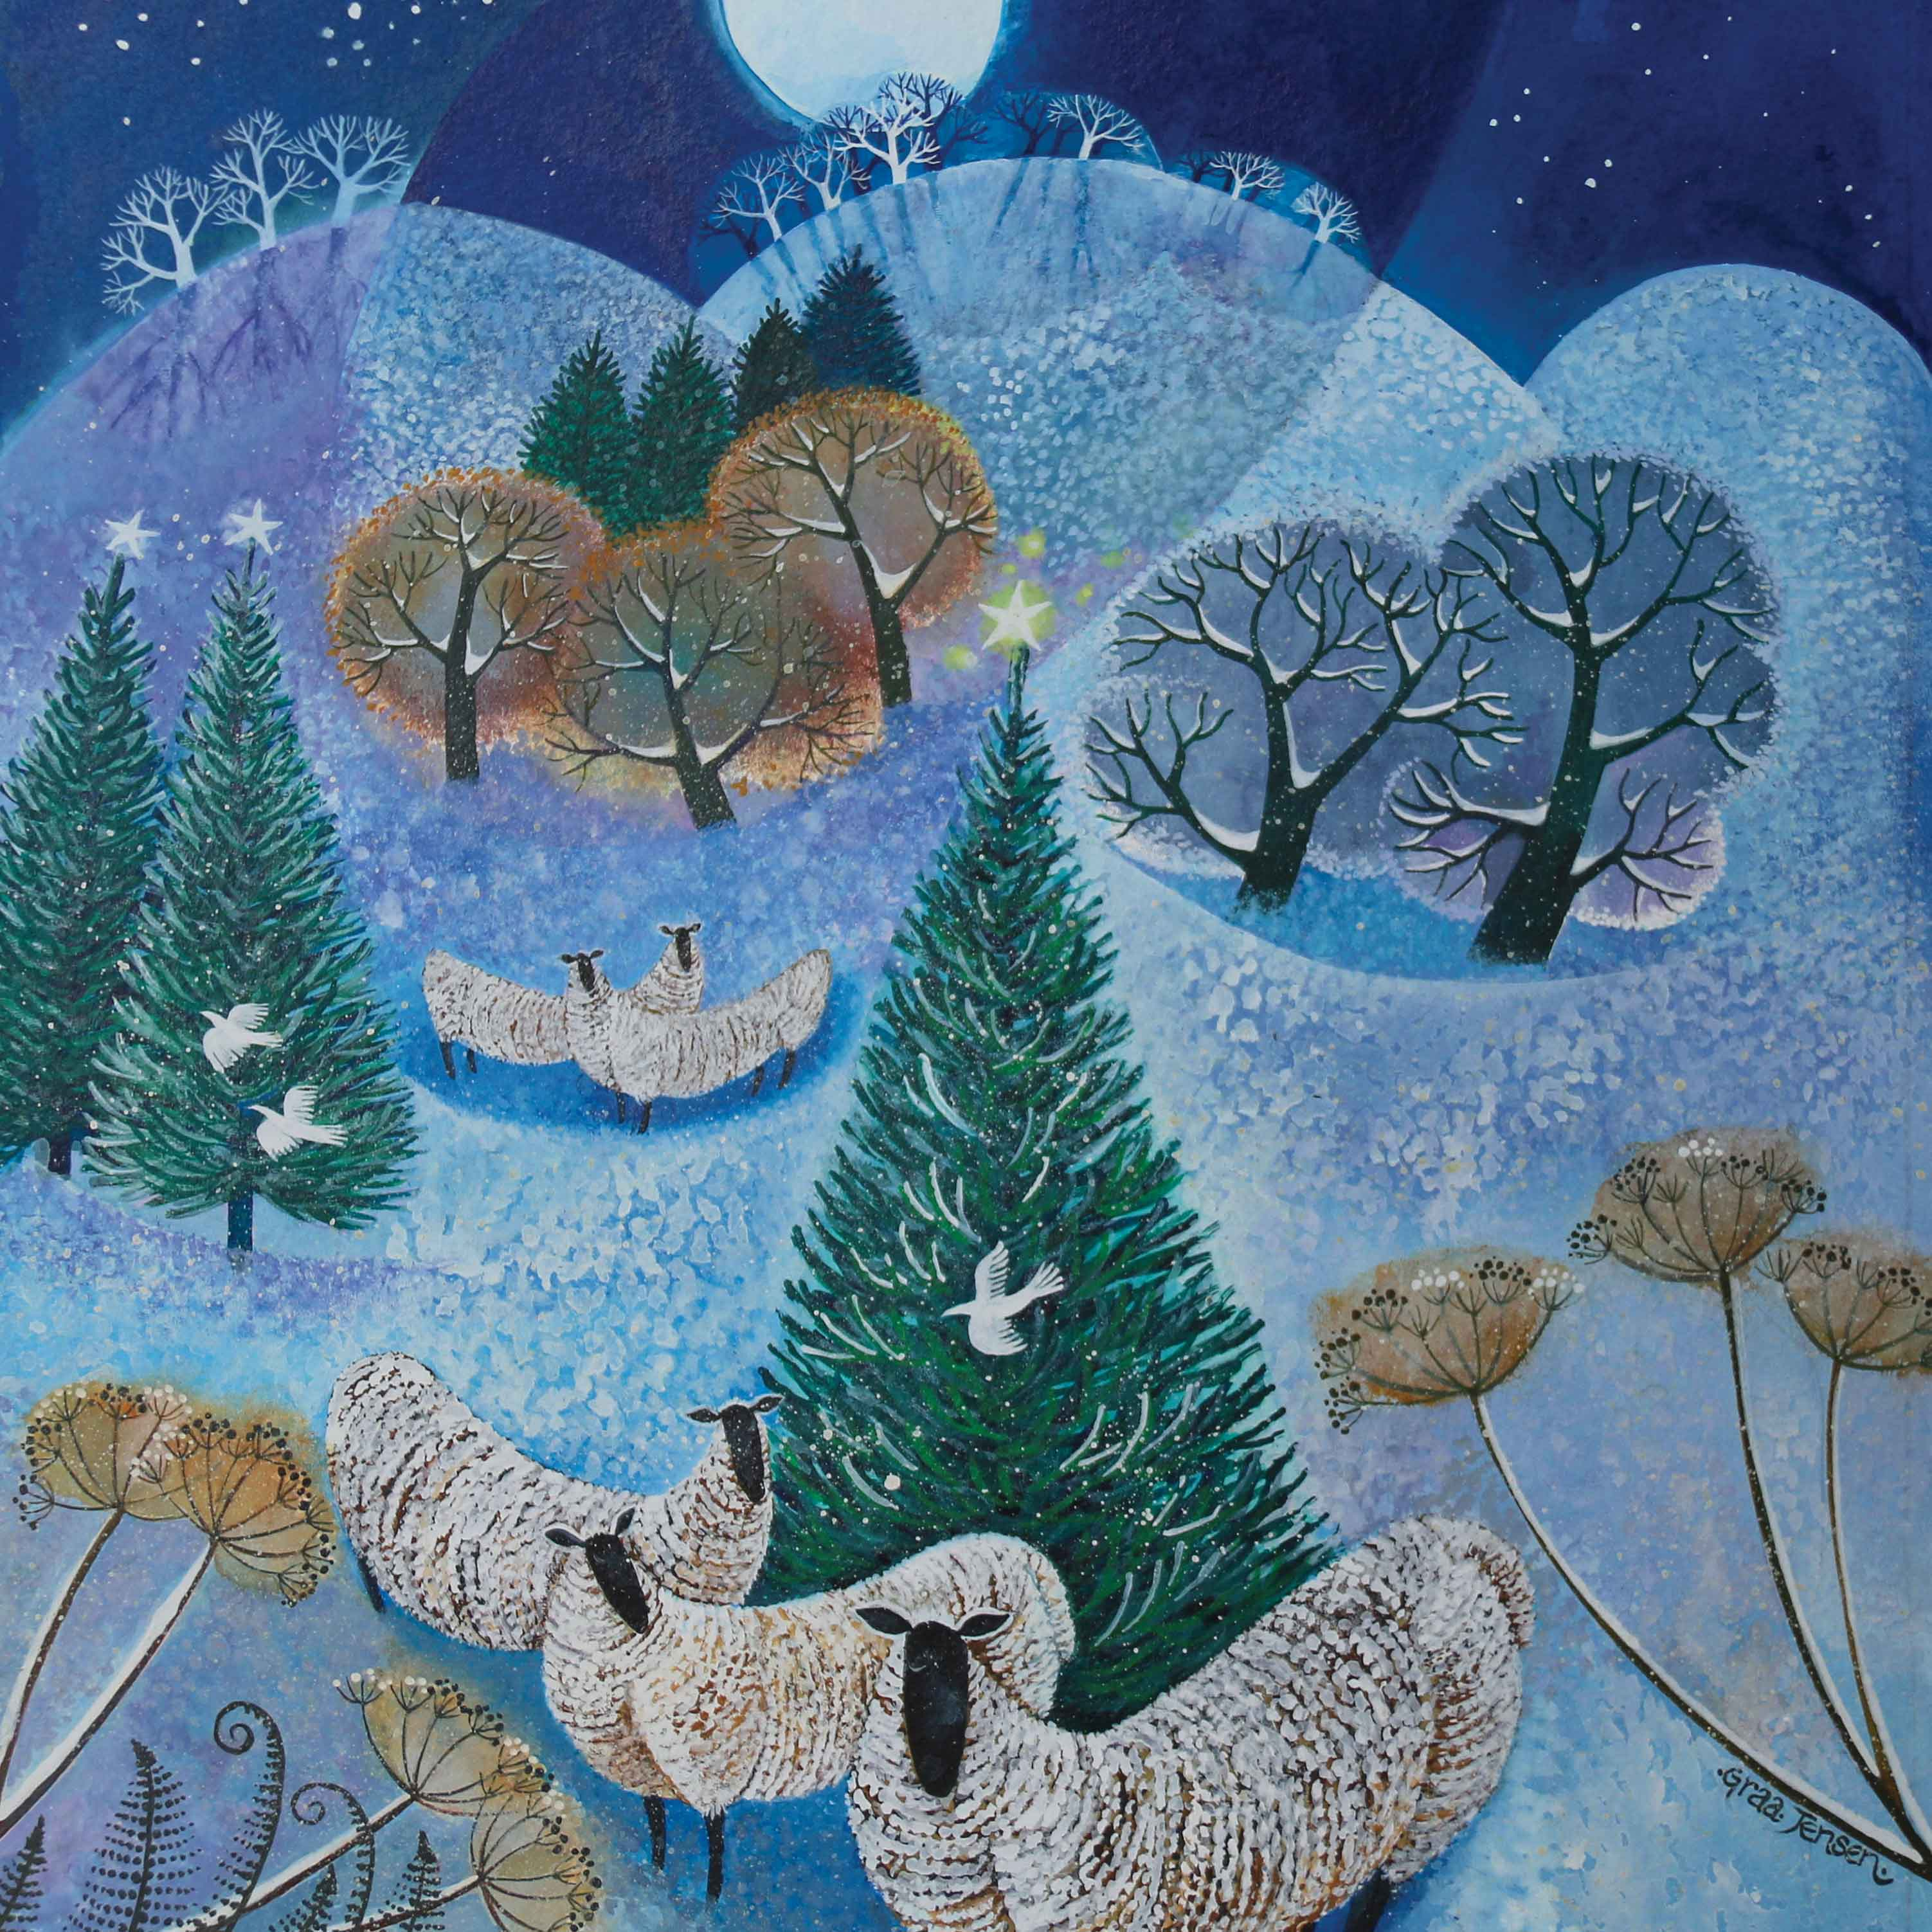 Christmas card pack by Lisa Graa Jensen, Winter landscape with sheep and trees